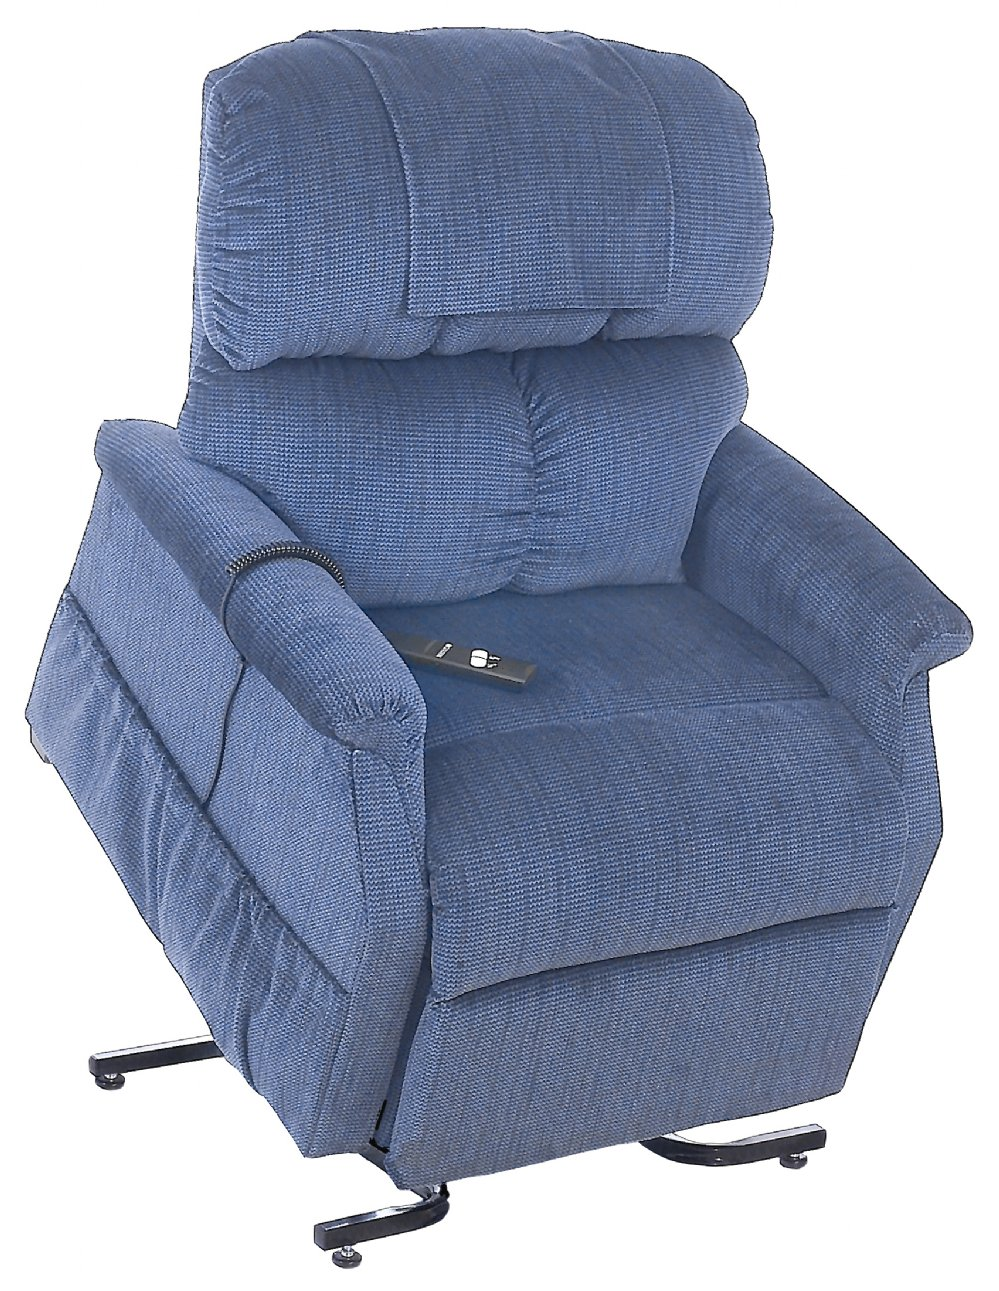 Pr 501s 23 Comforter Small Extra Wide Lift Chair Recliner